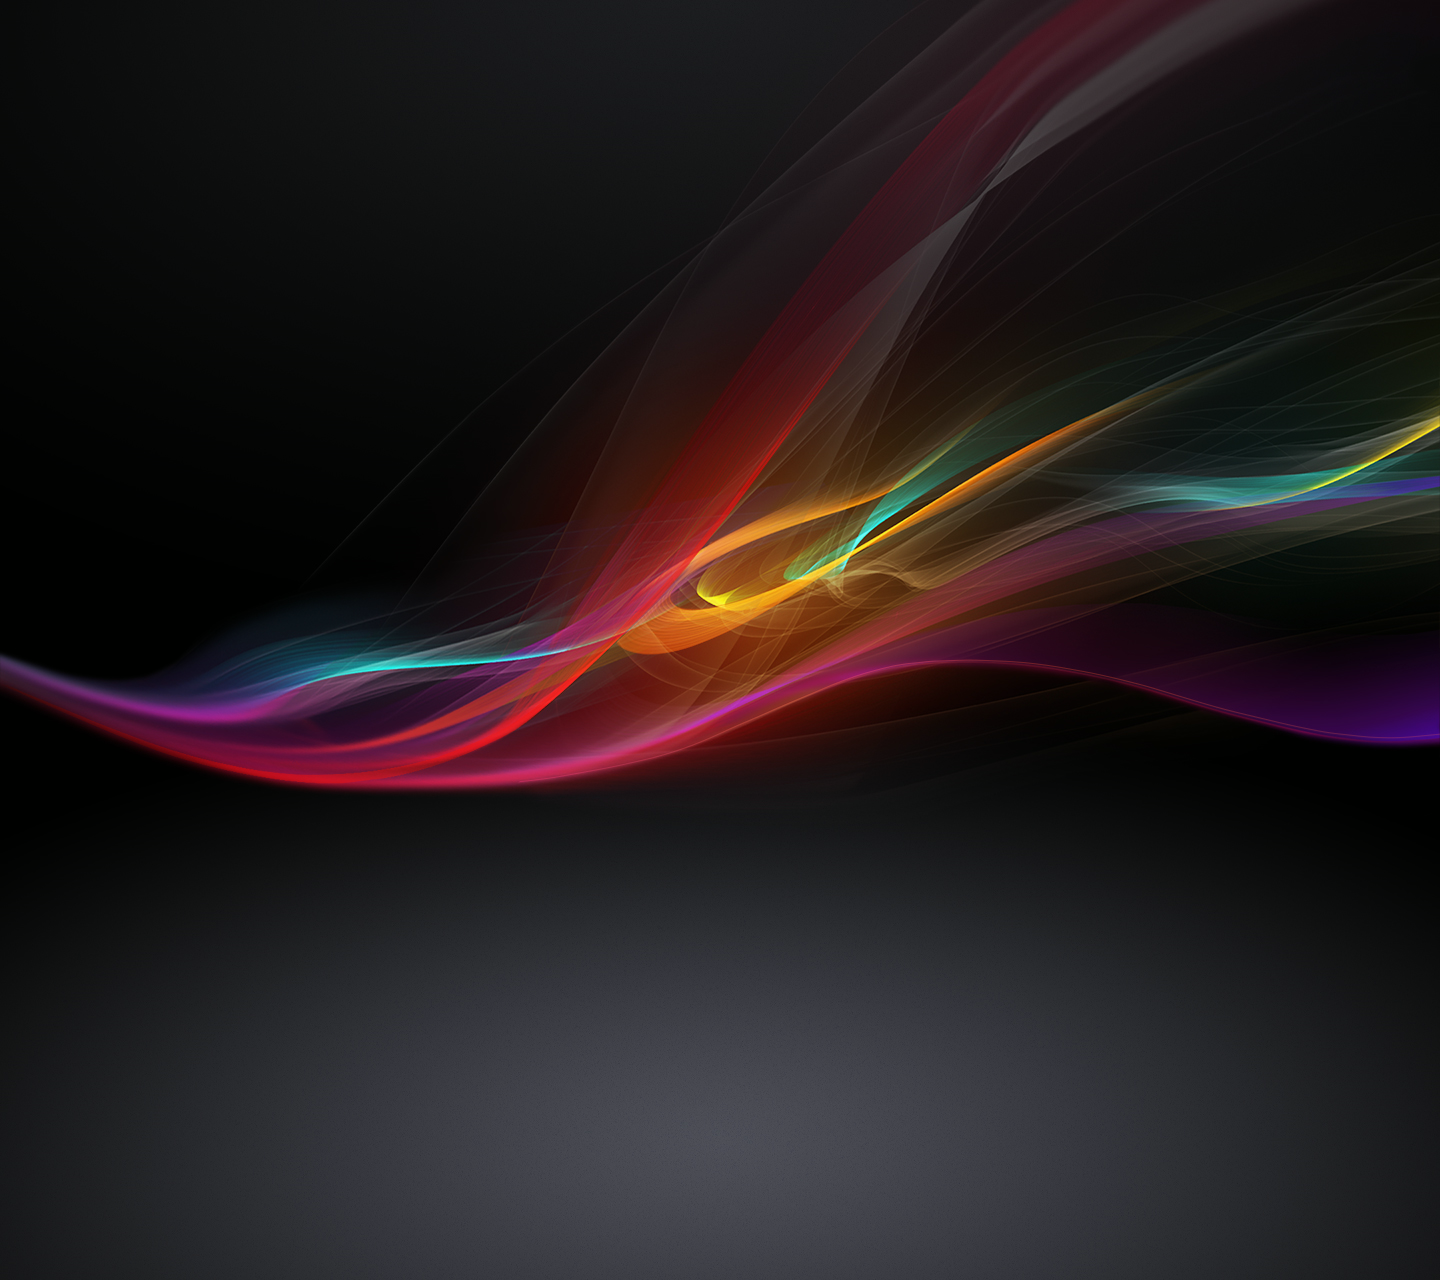 Black Xperia Z Wallpaper